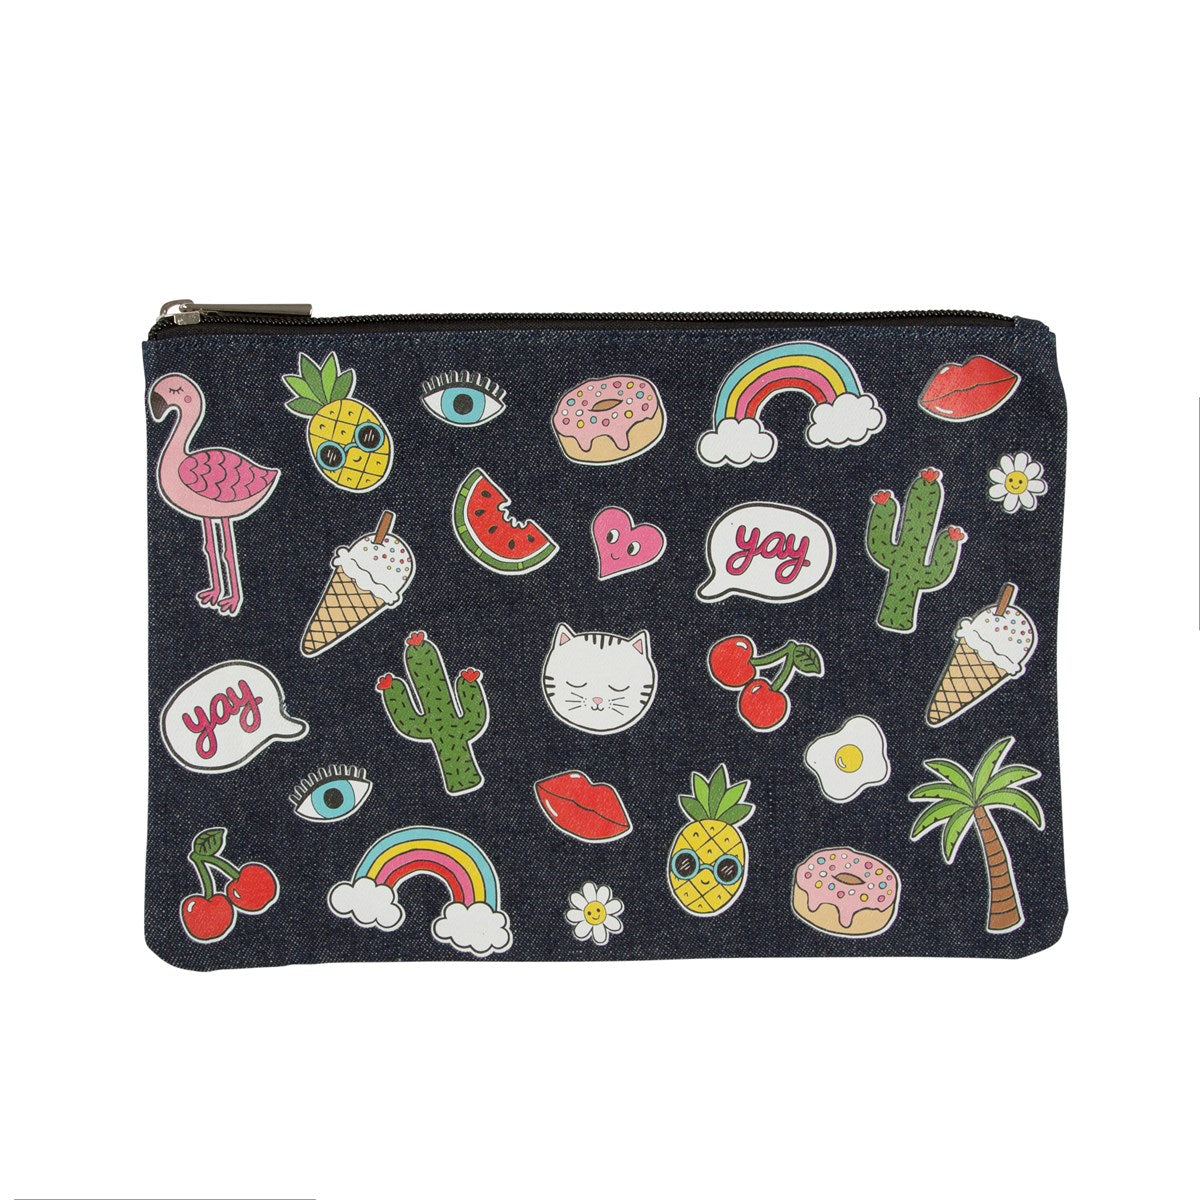 Patches and Pins Pouch - MissieMay